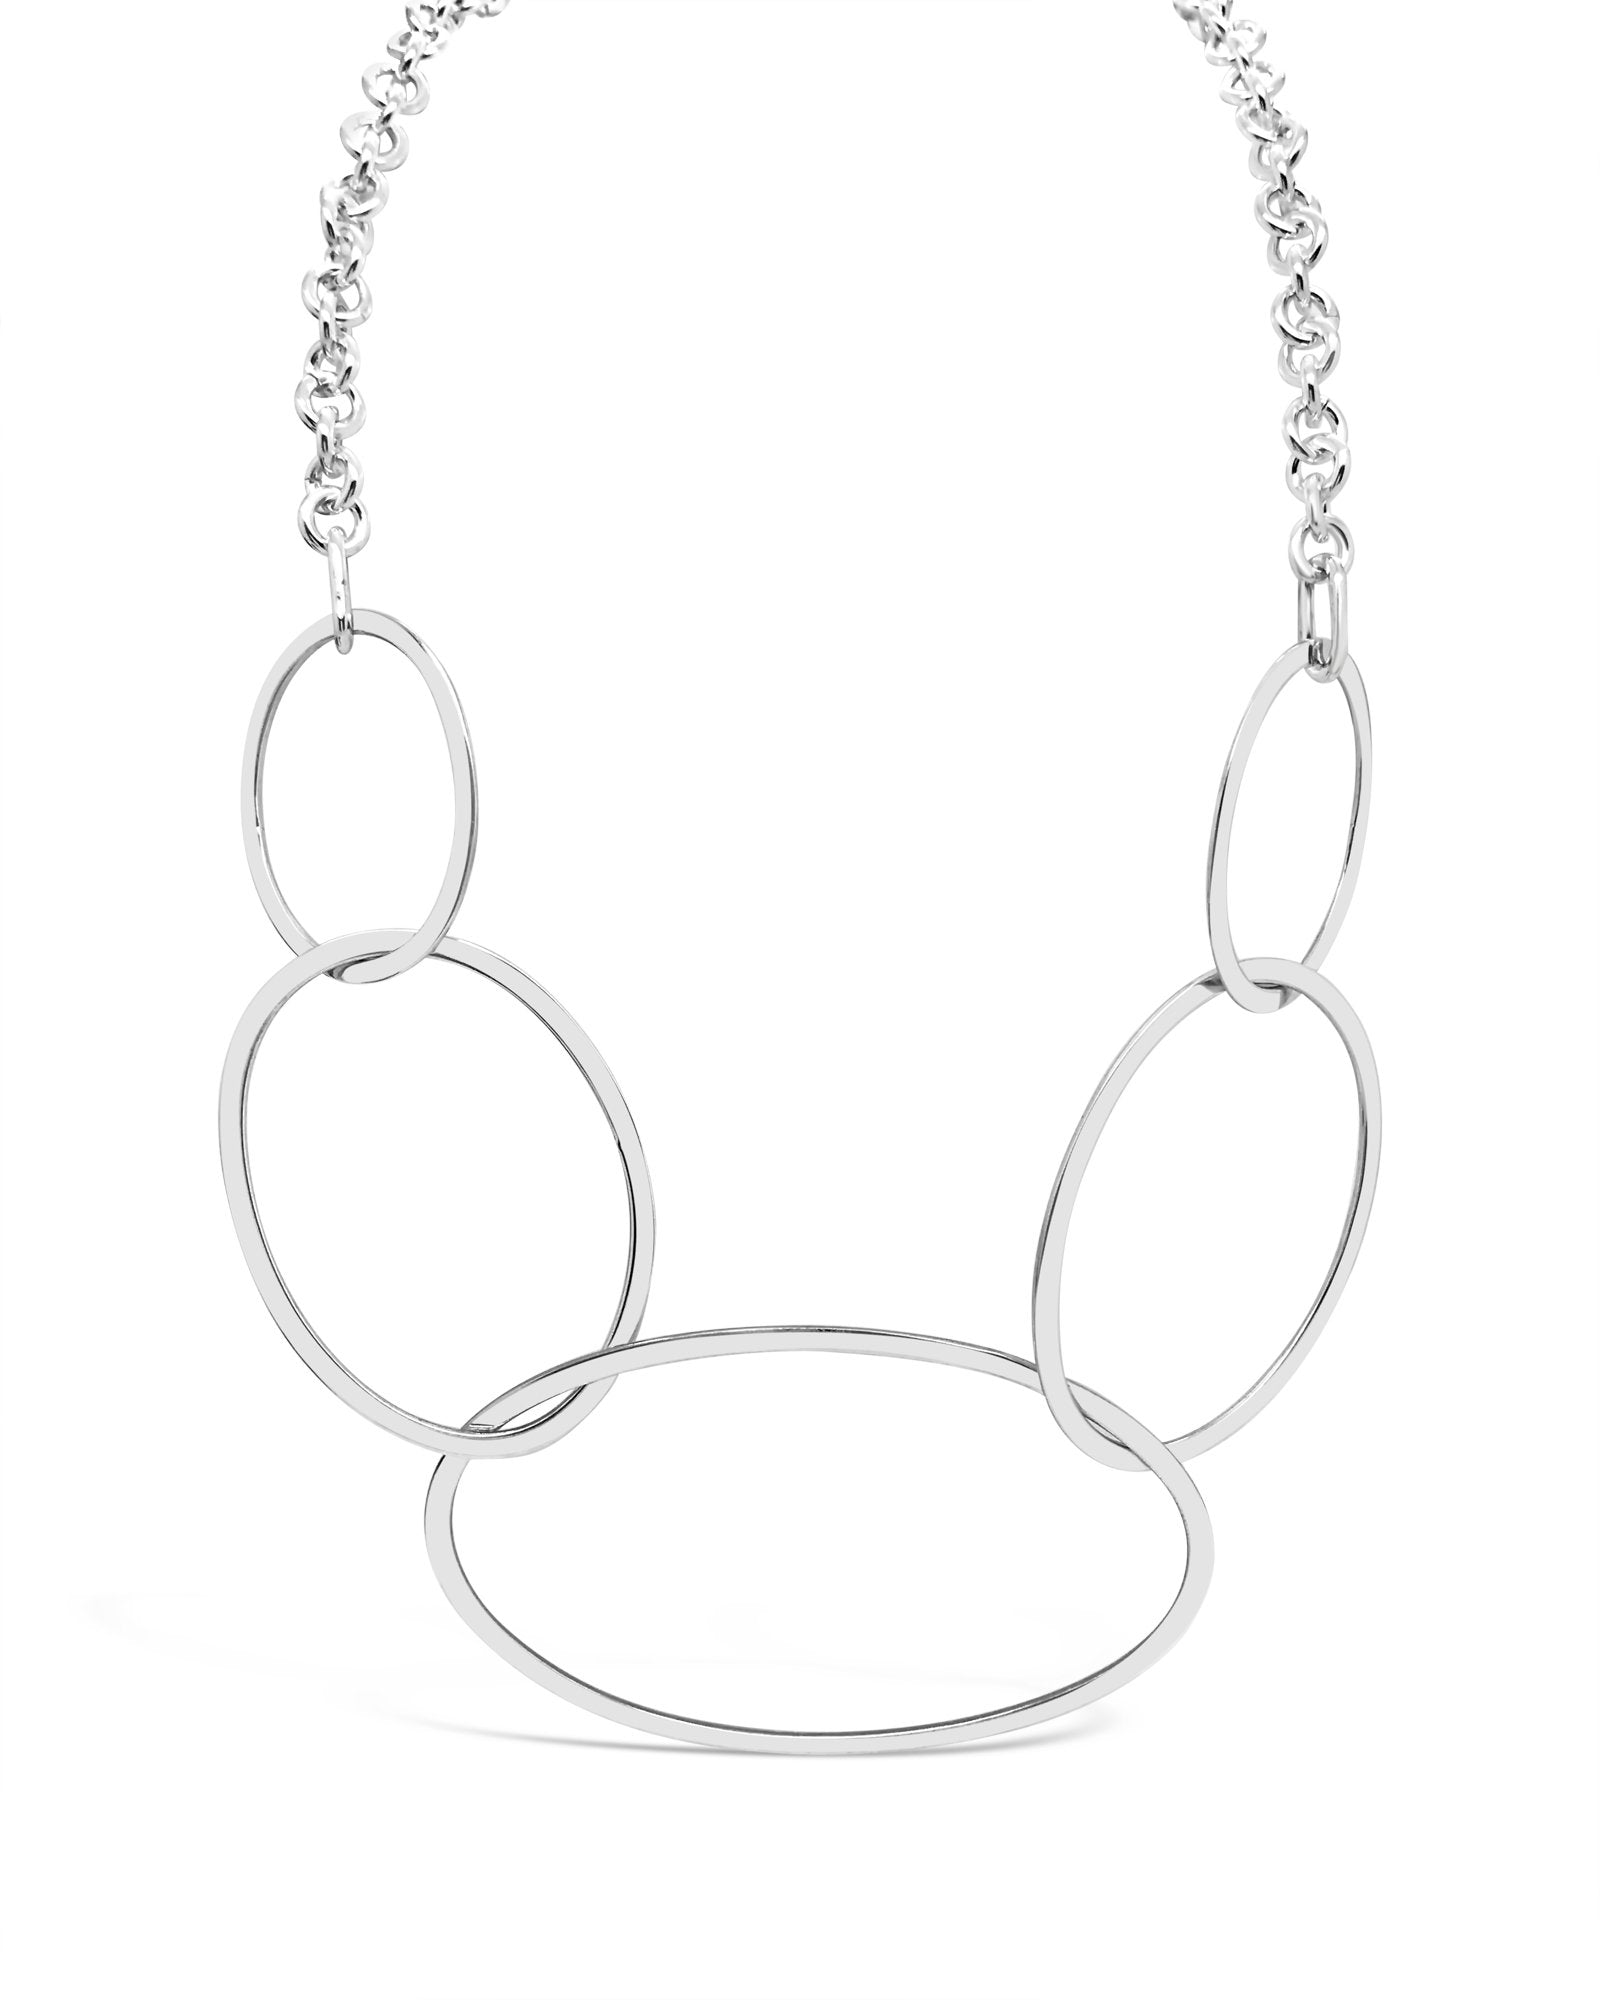 MULTI OVAL LINK NECKLACE